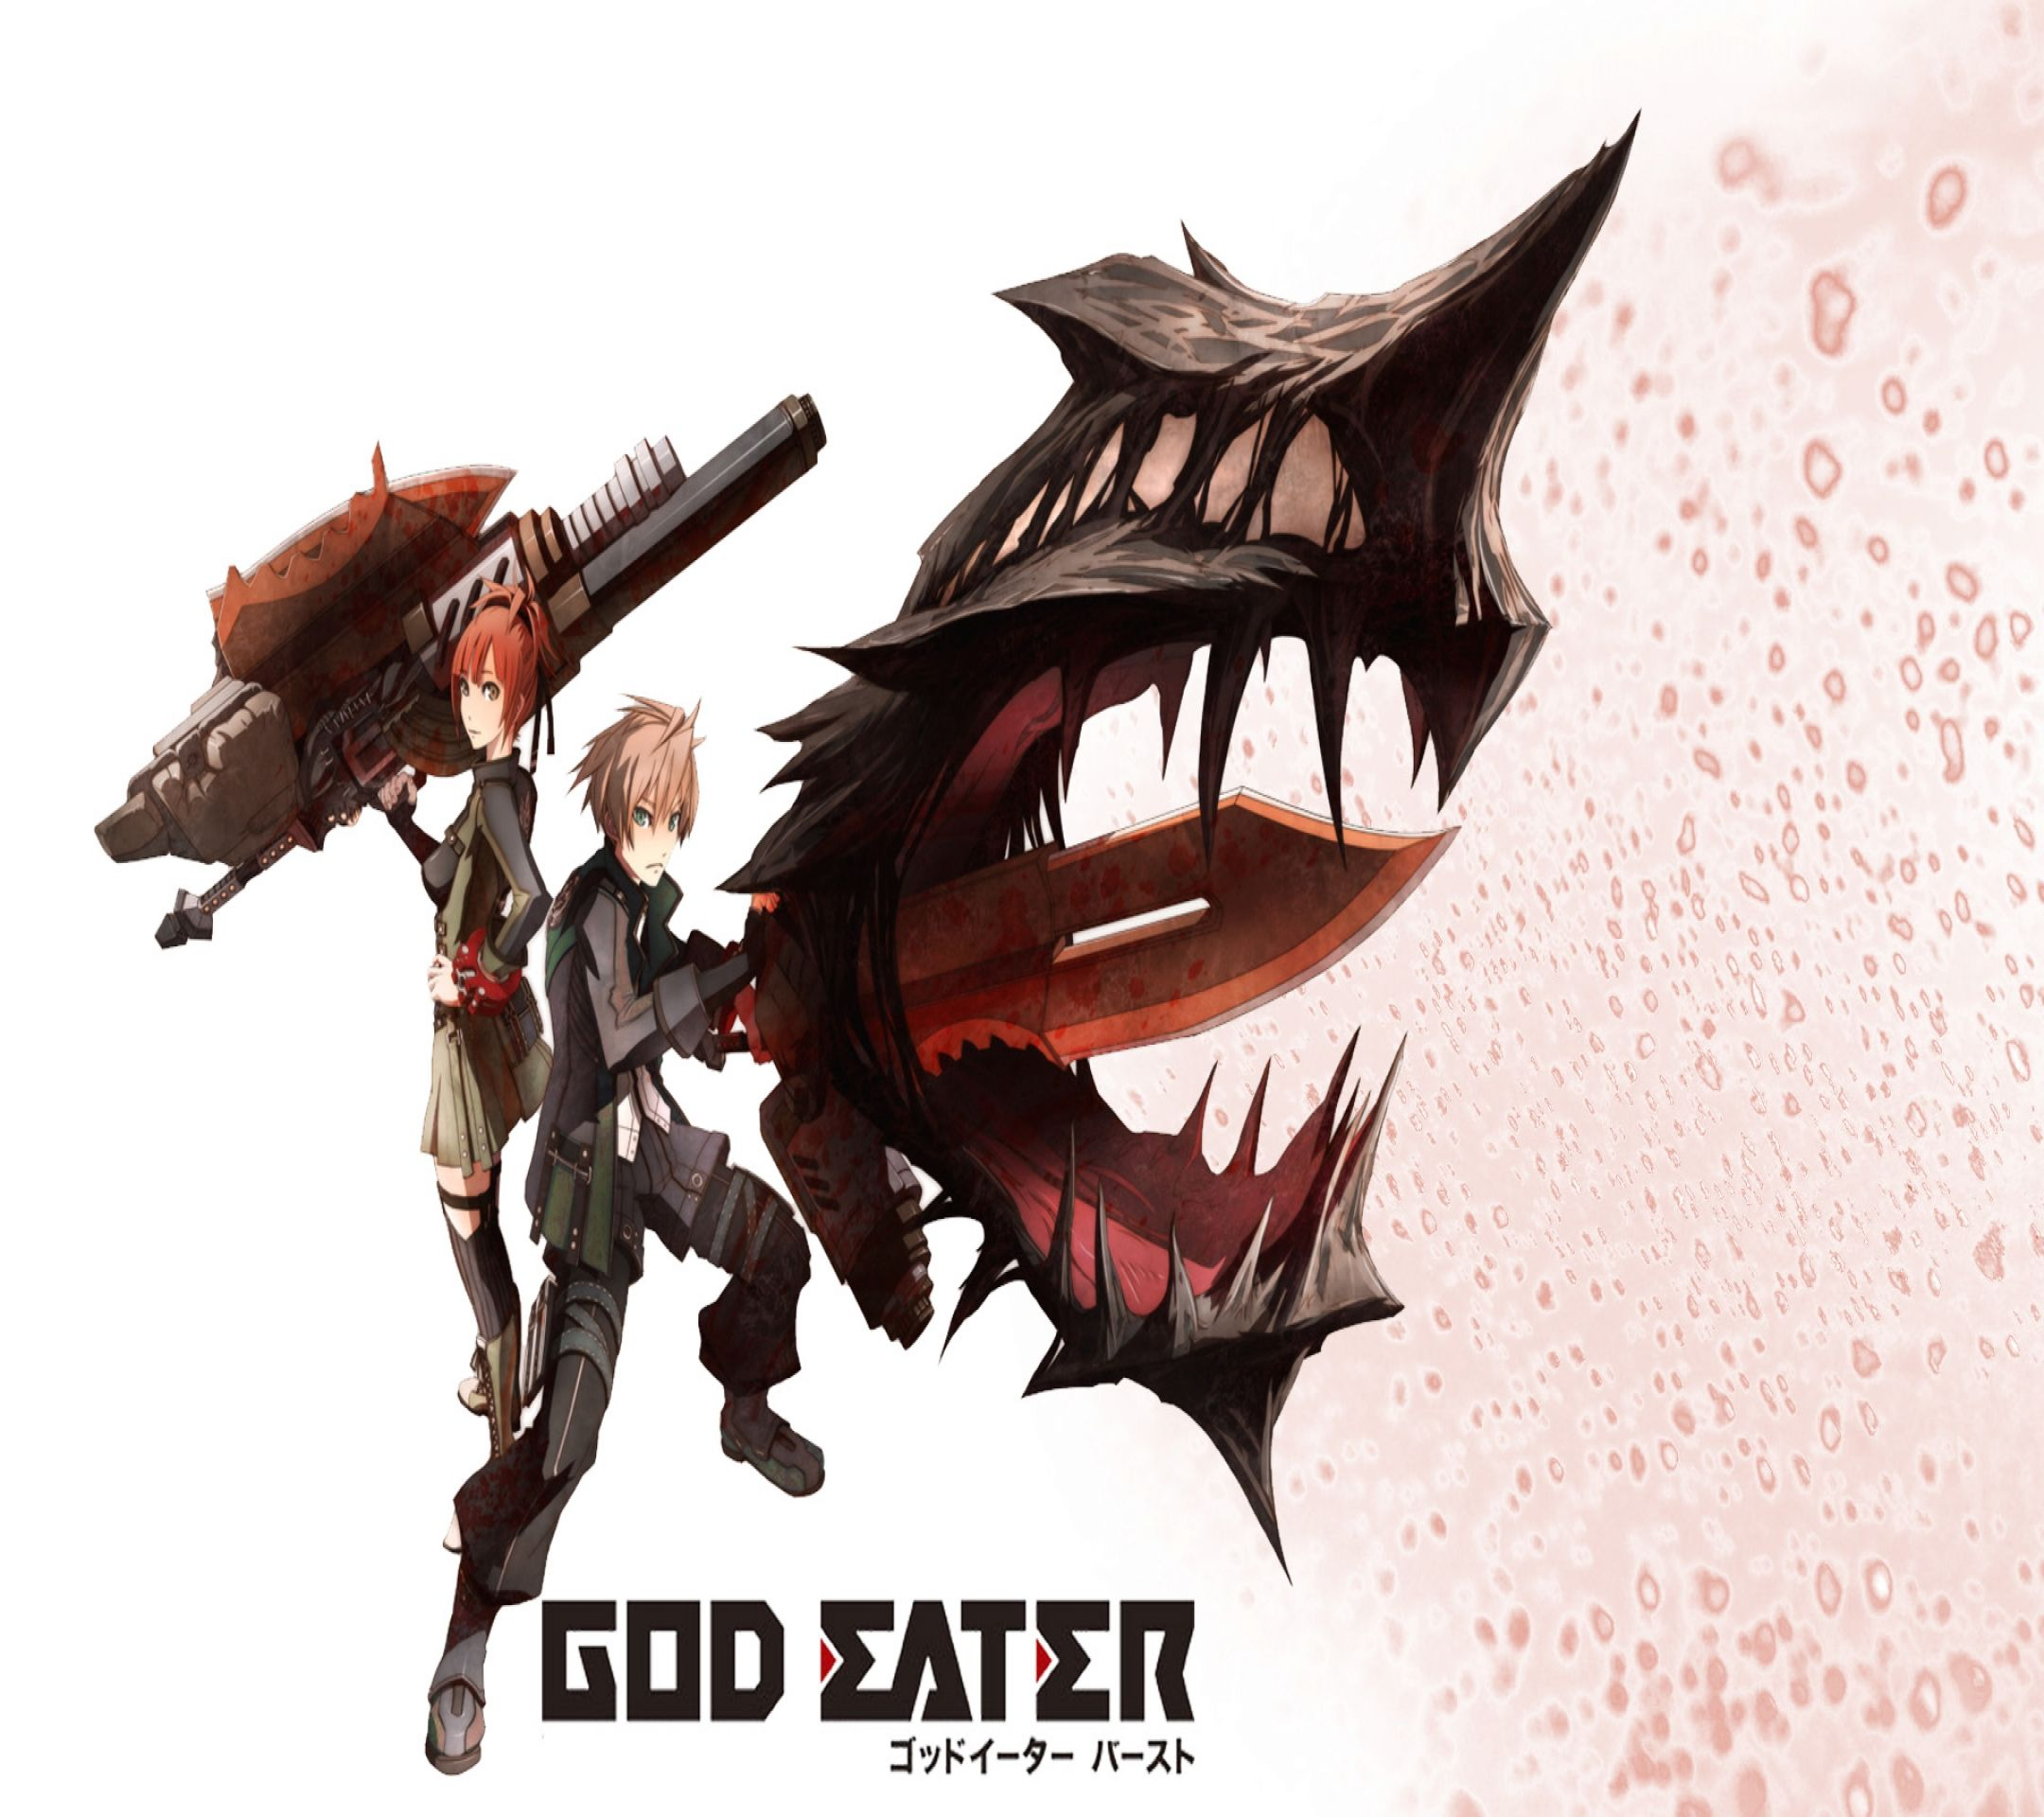 god eater anime tap to see more anime wallpaper